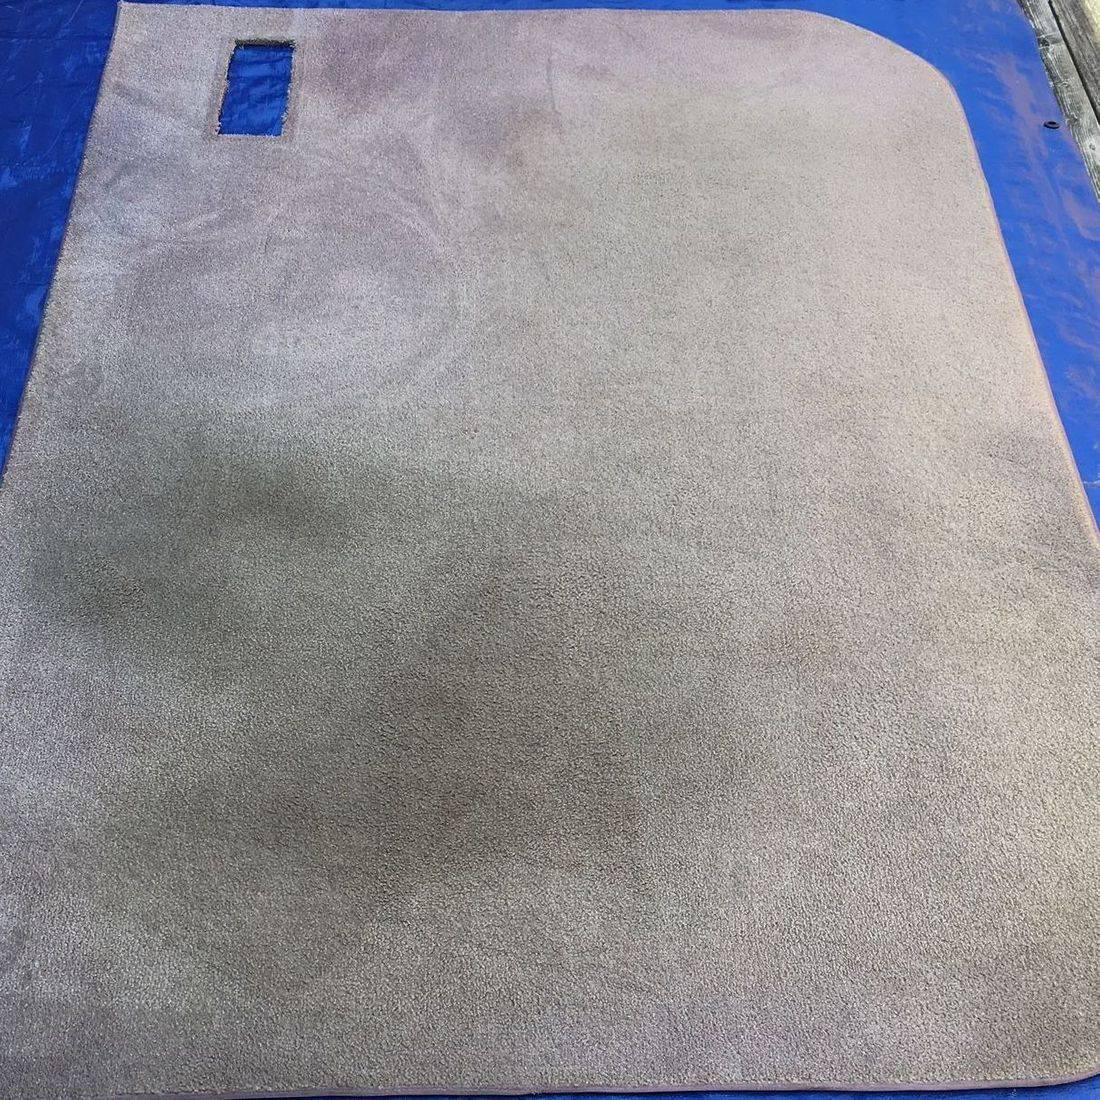 Custom Colour Carpets & Rugs, Carpet Dyeing, Nylon Carpet  Colour Change